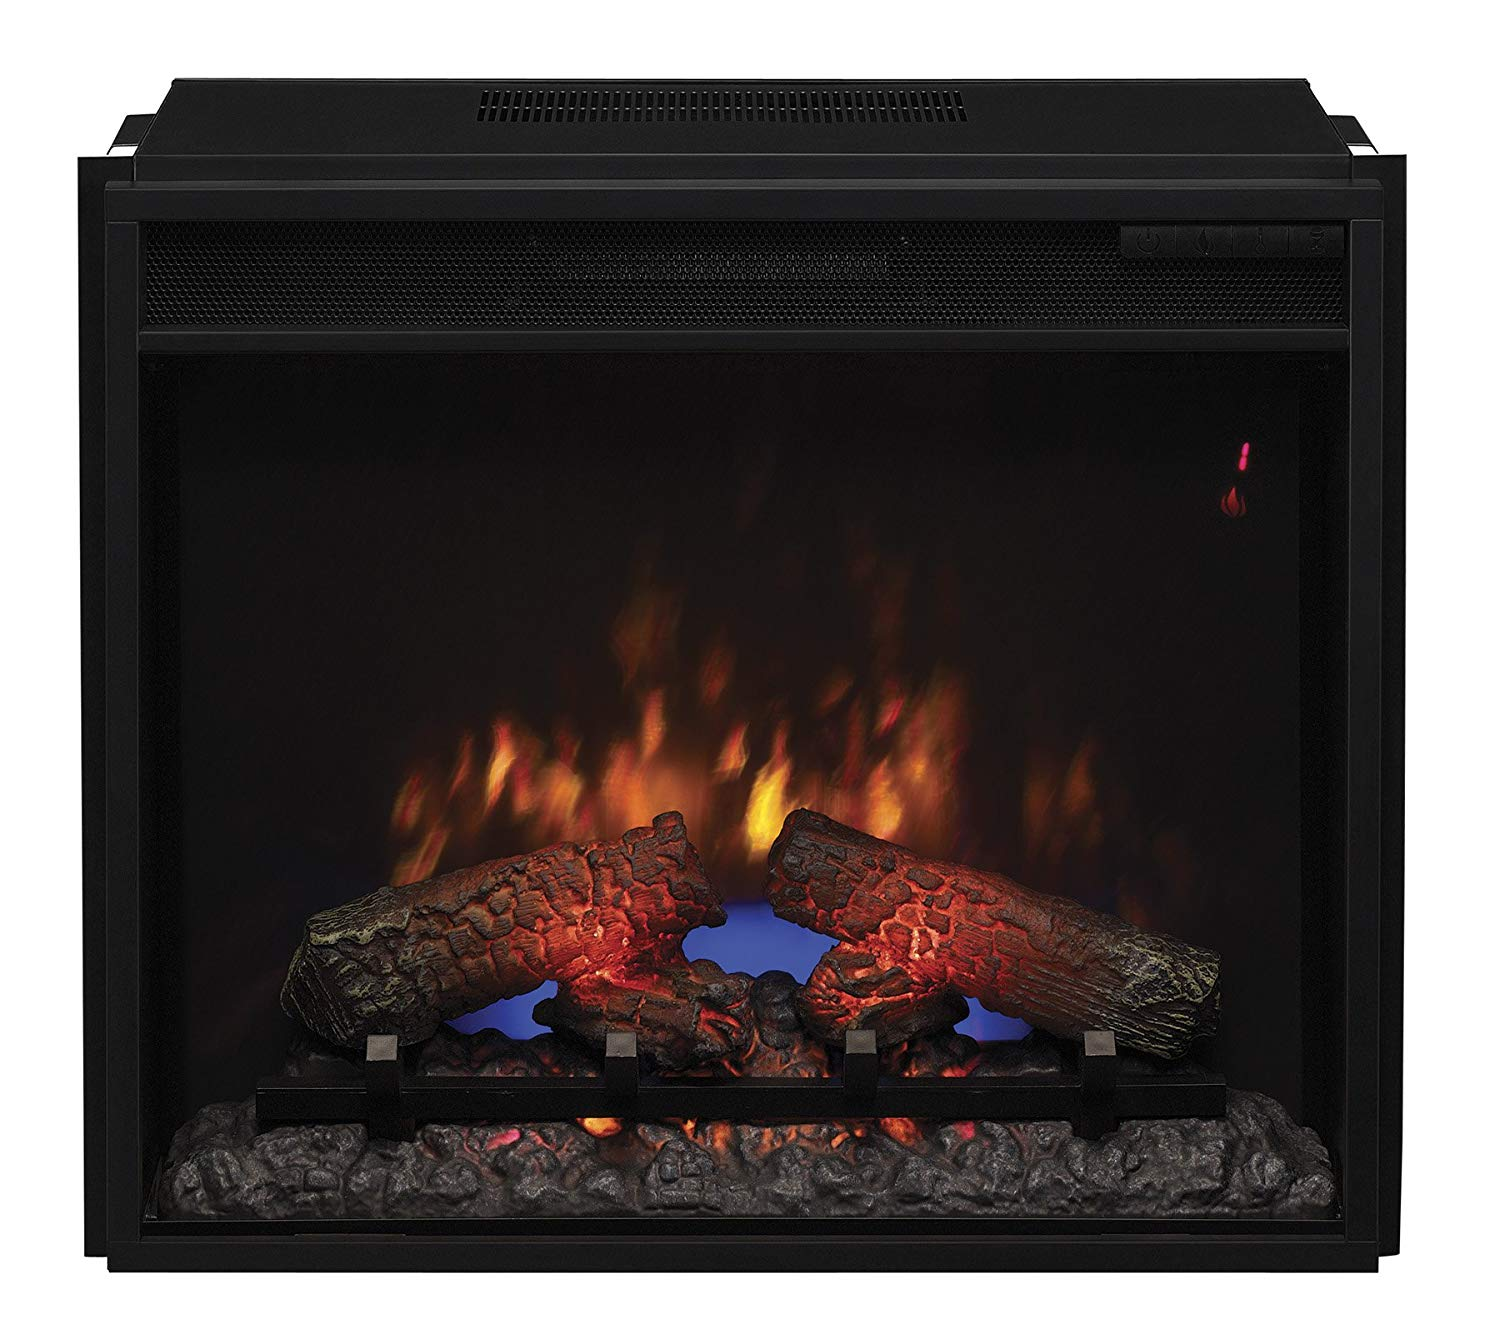 "Heater that Looks Like A Fireplace New Classicflame 23ef031grp 23"" Electric Fireplace Insert with Safer Plug"